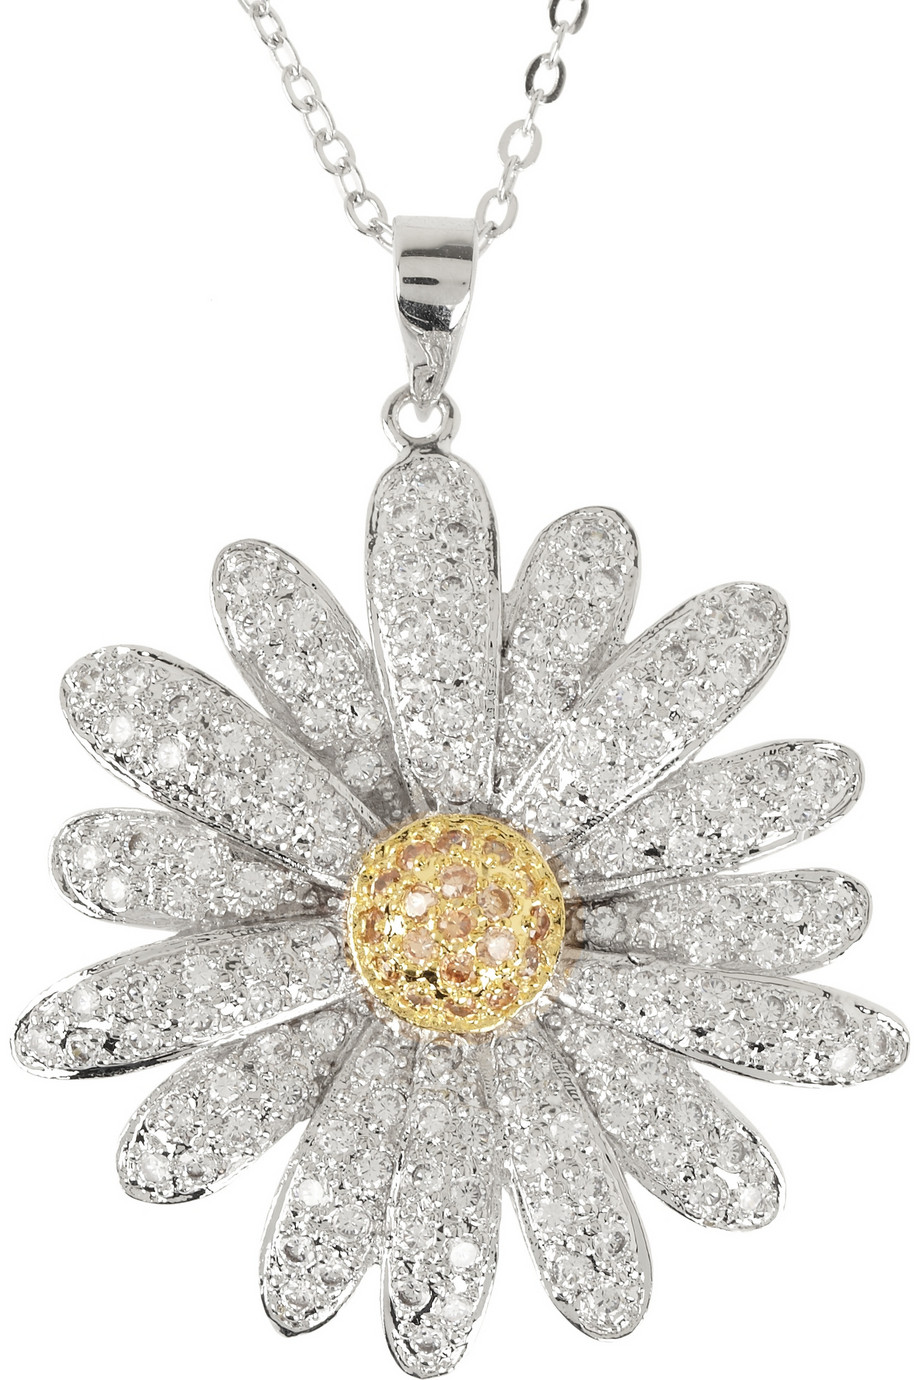 necklaces with white plated daisy jensen pendant enamel jewellery image gold georg